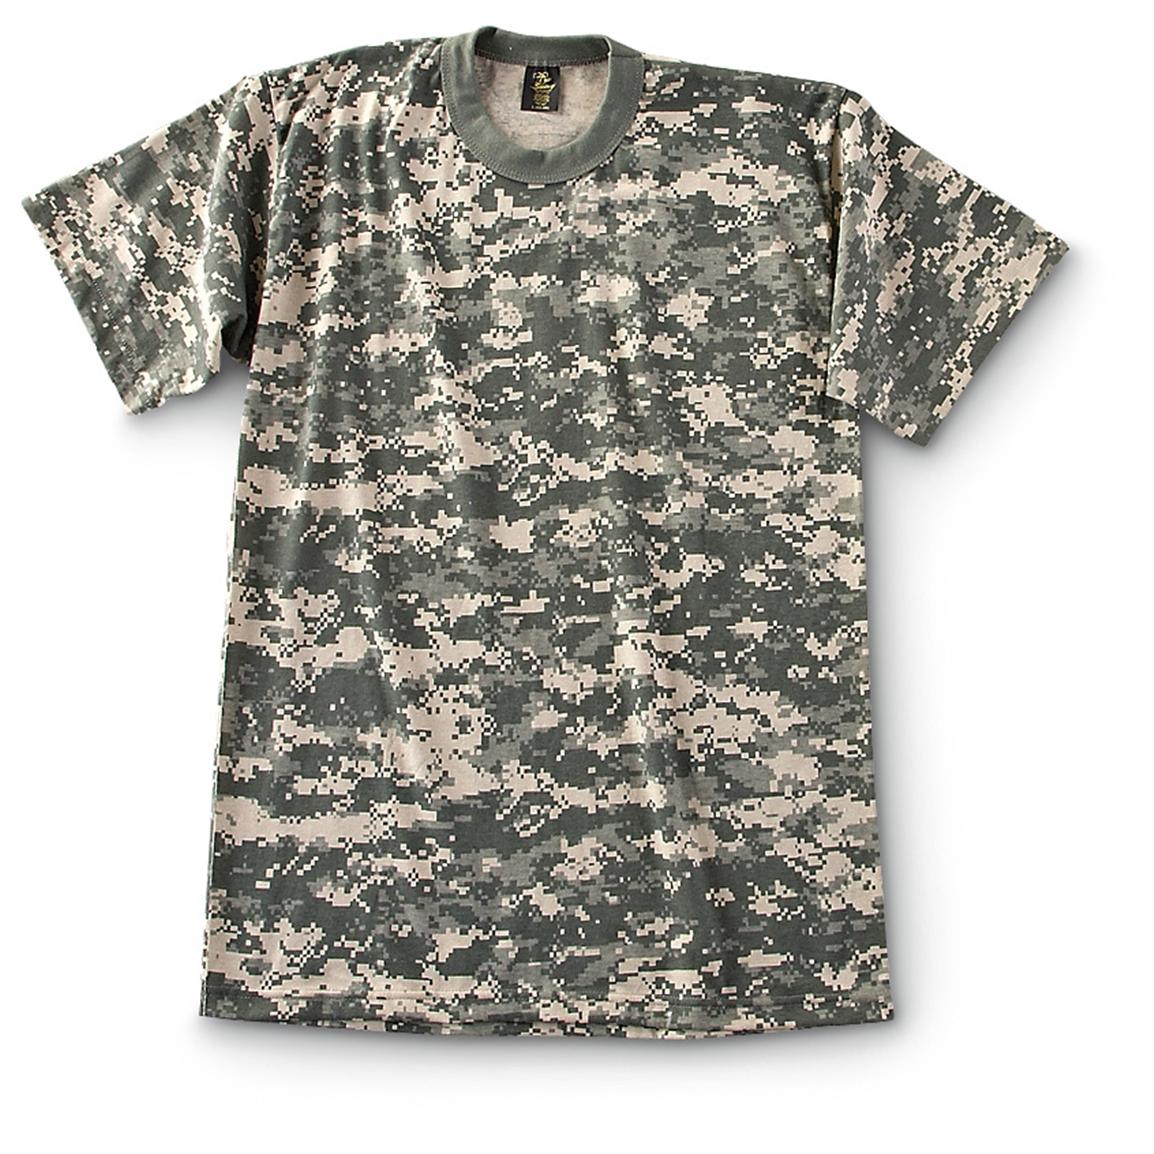 Military-Style Short-Sleeve T-Shirts, 2 Pack, New, Army Digital